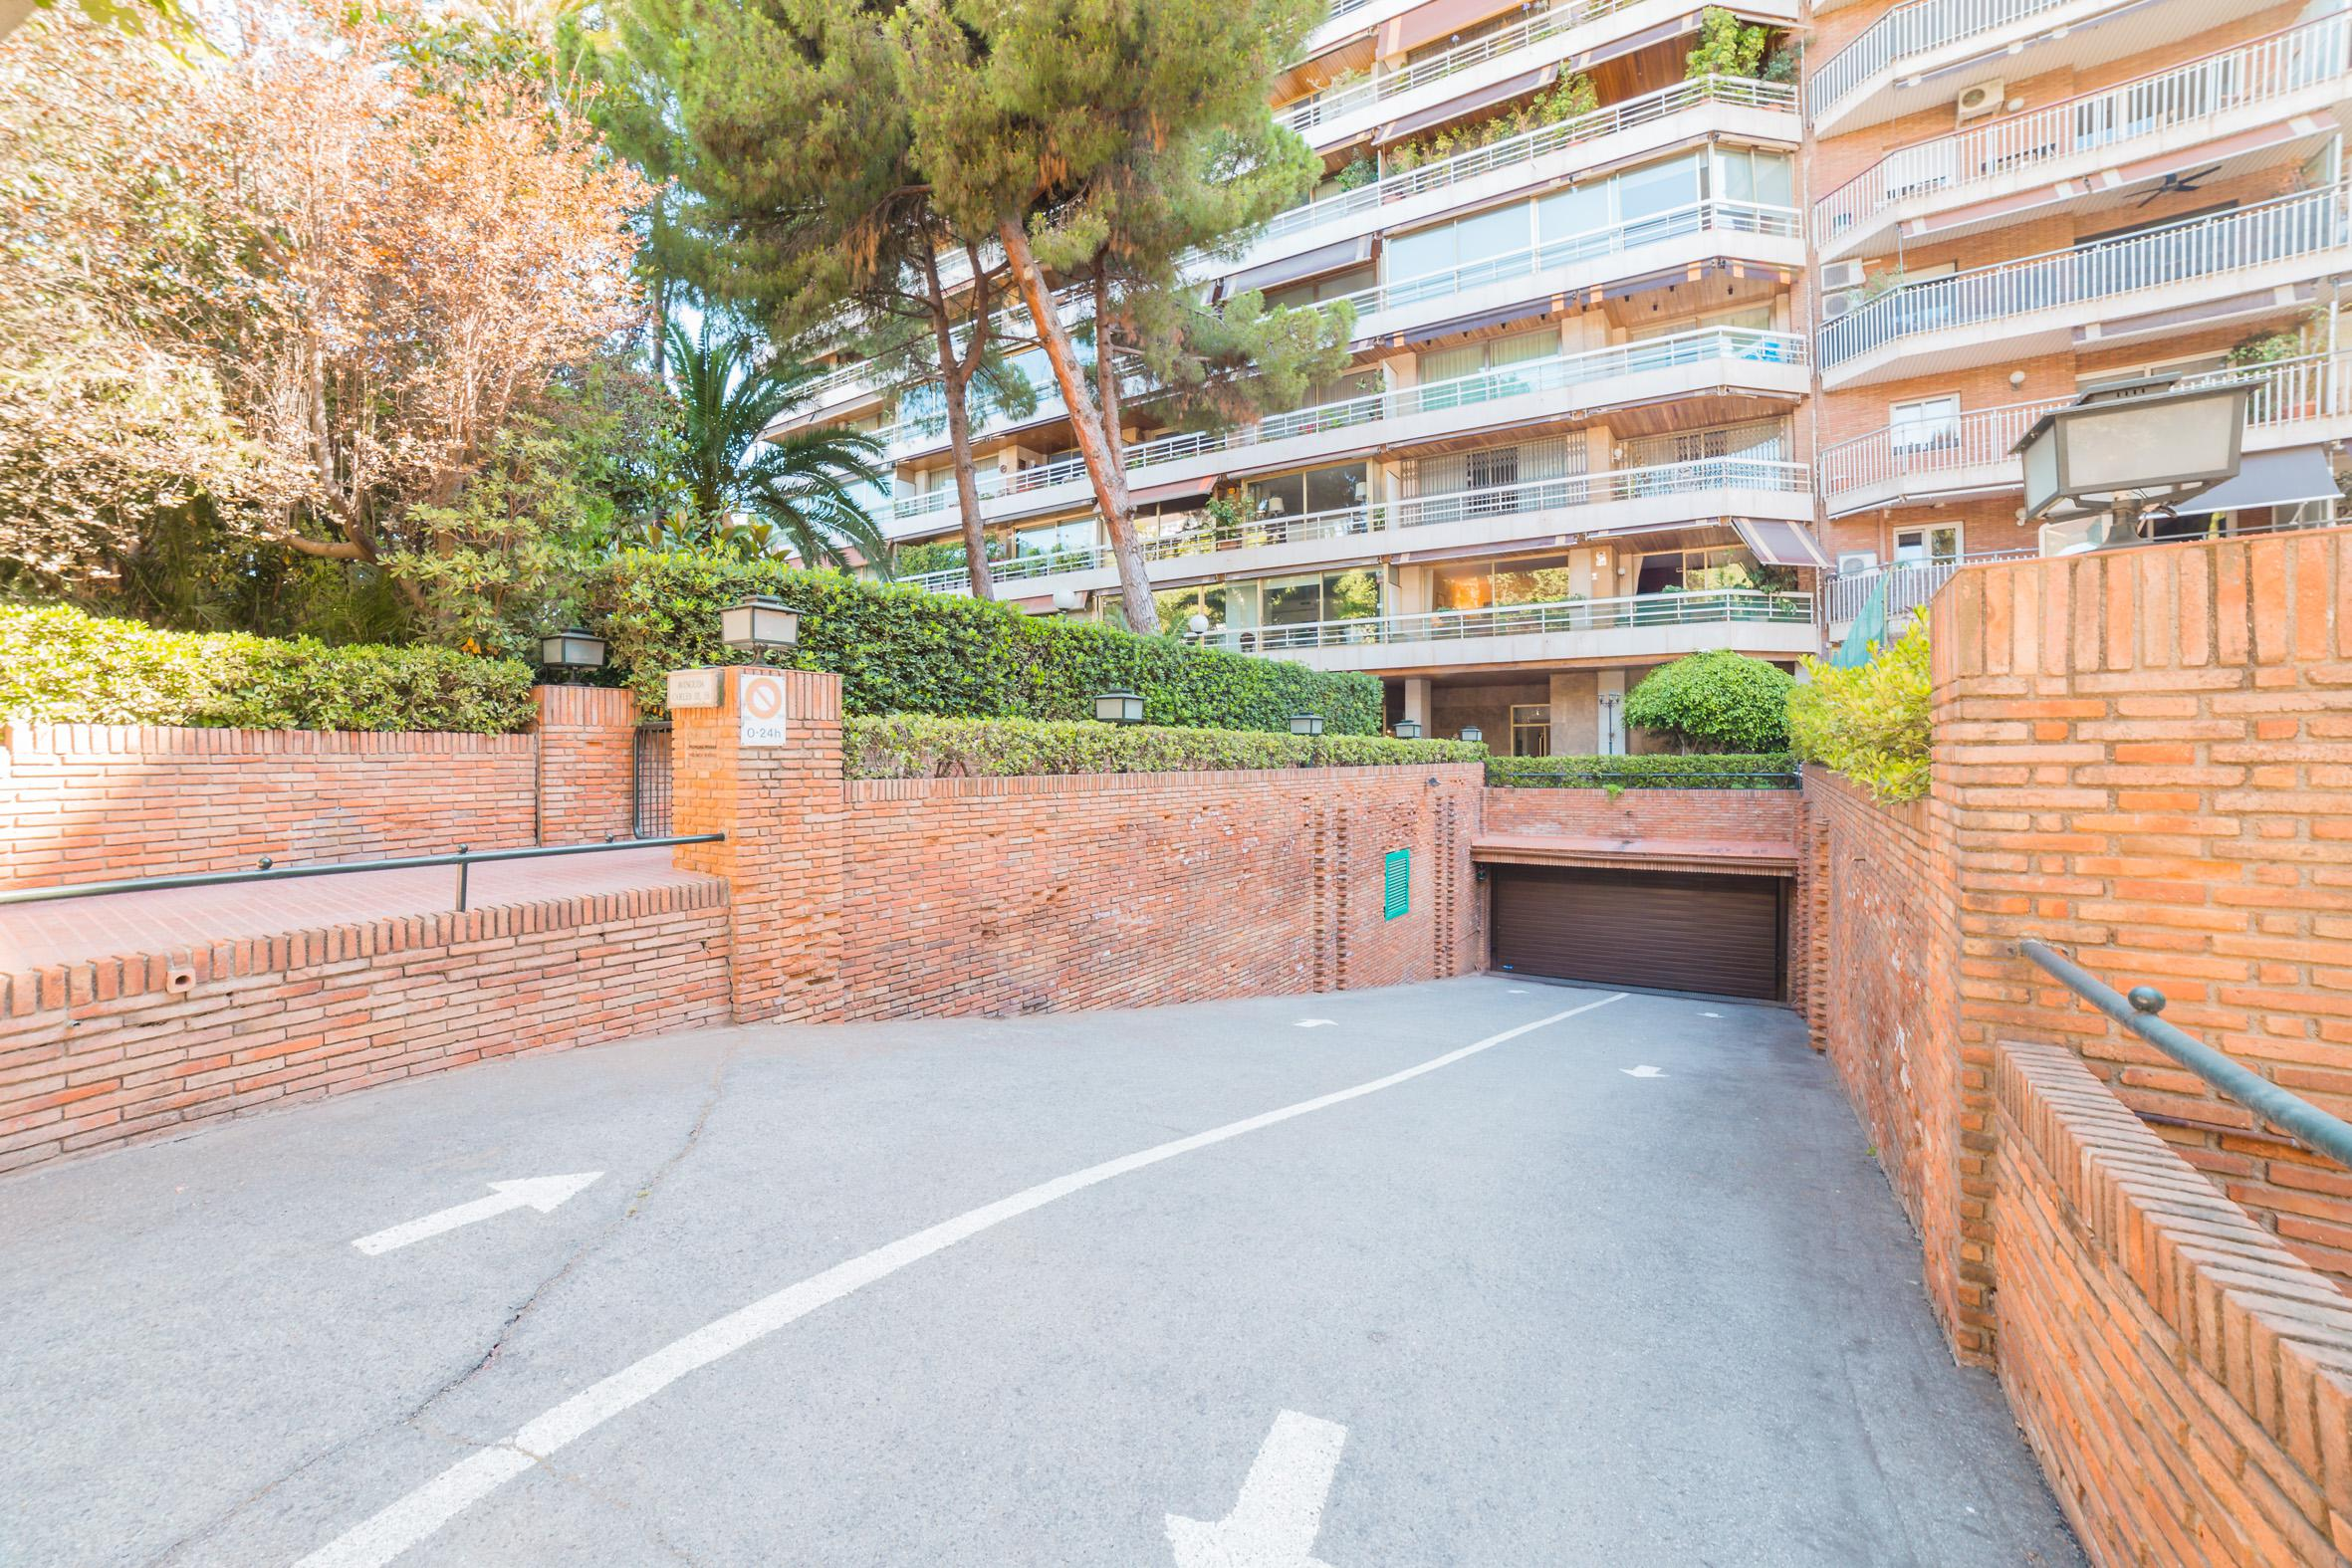 248988 Flat for sale in Les Corts, Les Corts 32